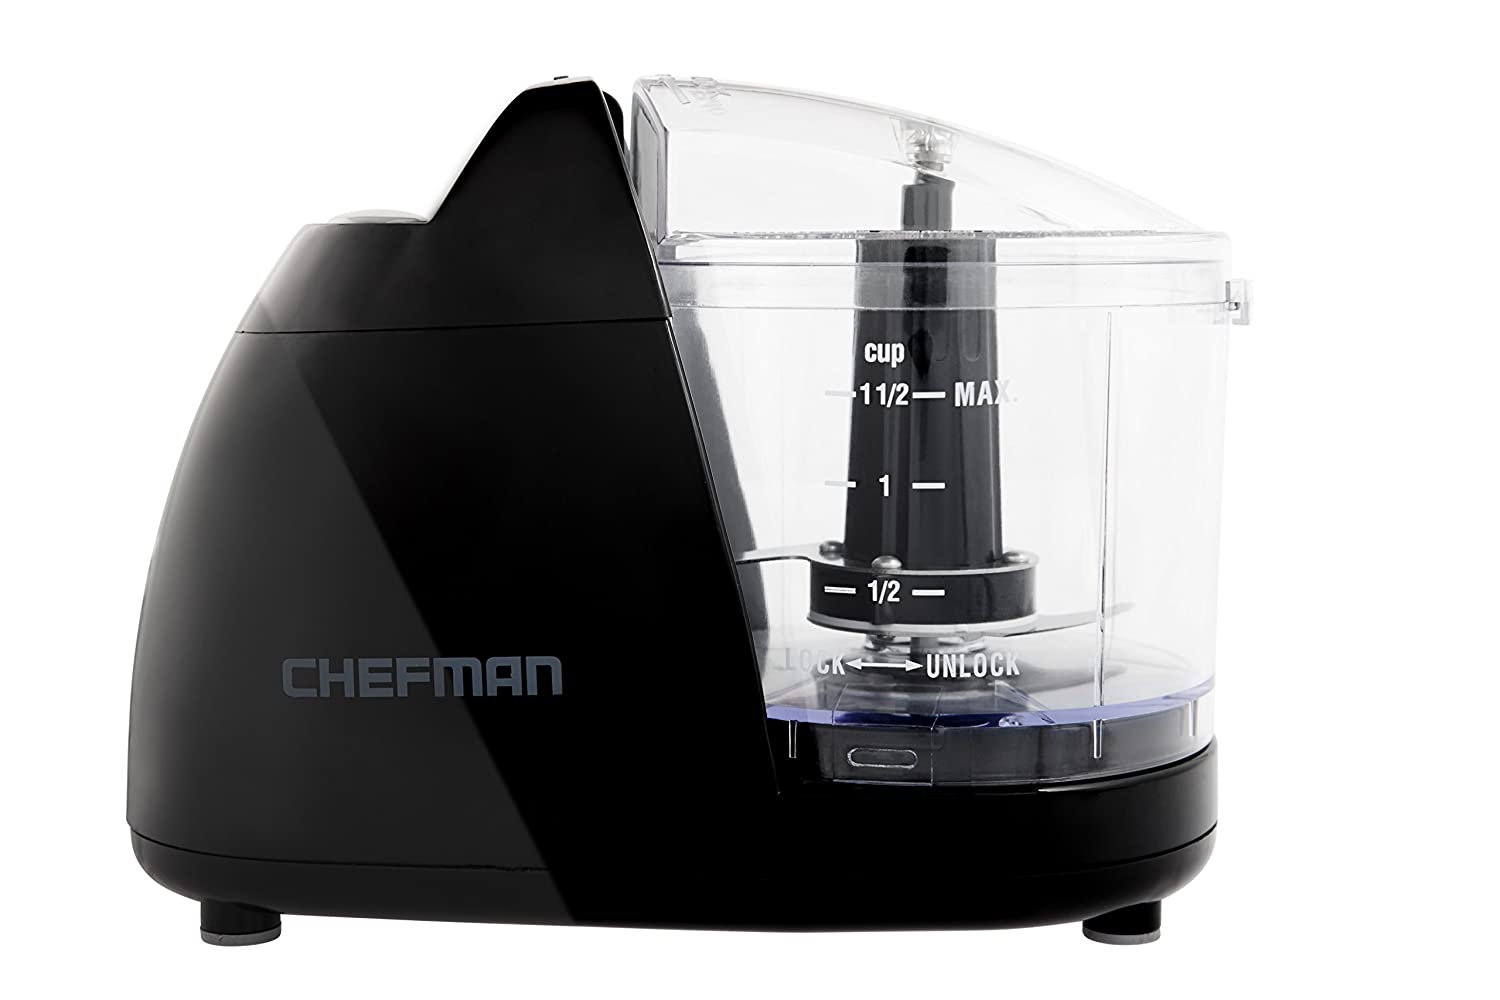 Chefman RJ12-V2 Food Chopper, Black